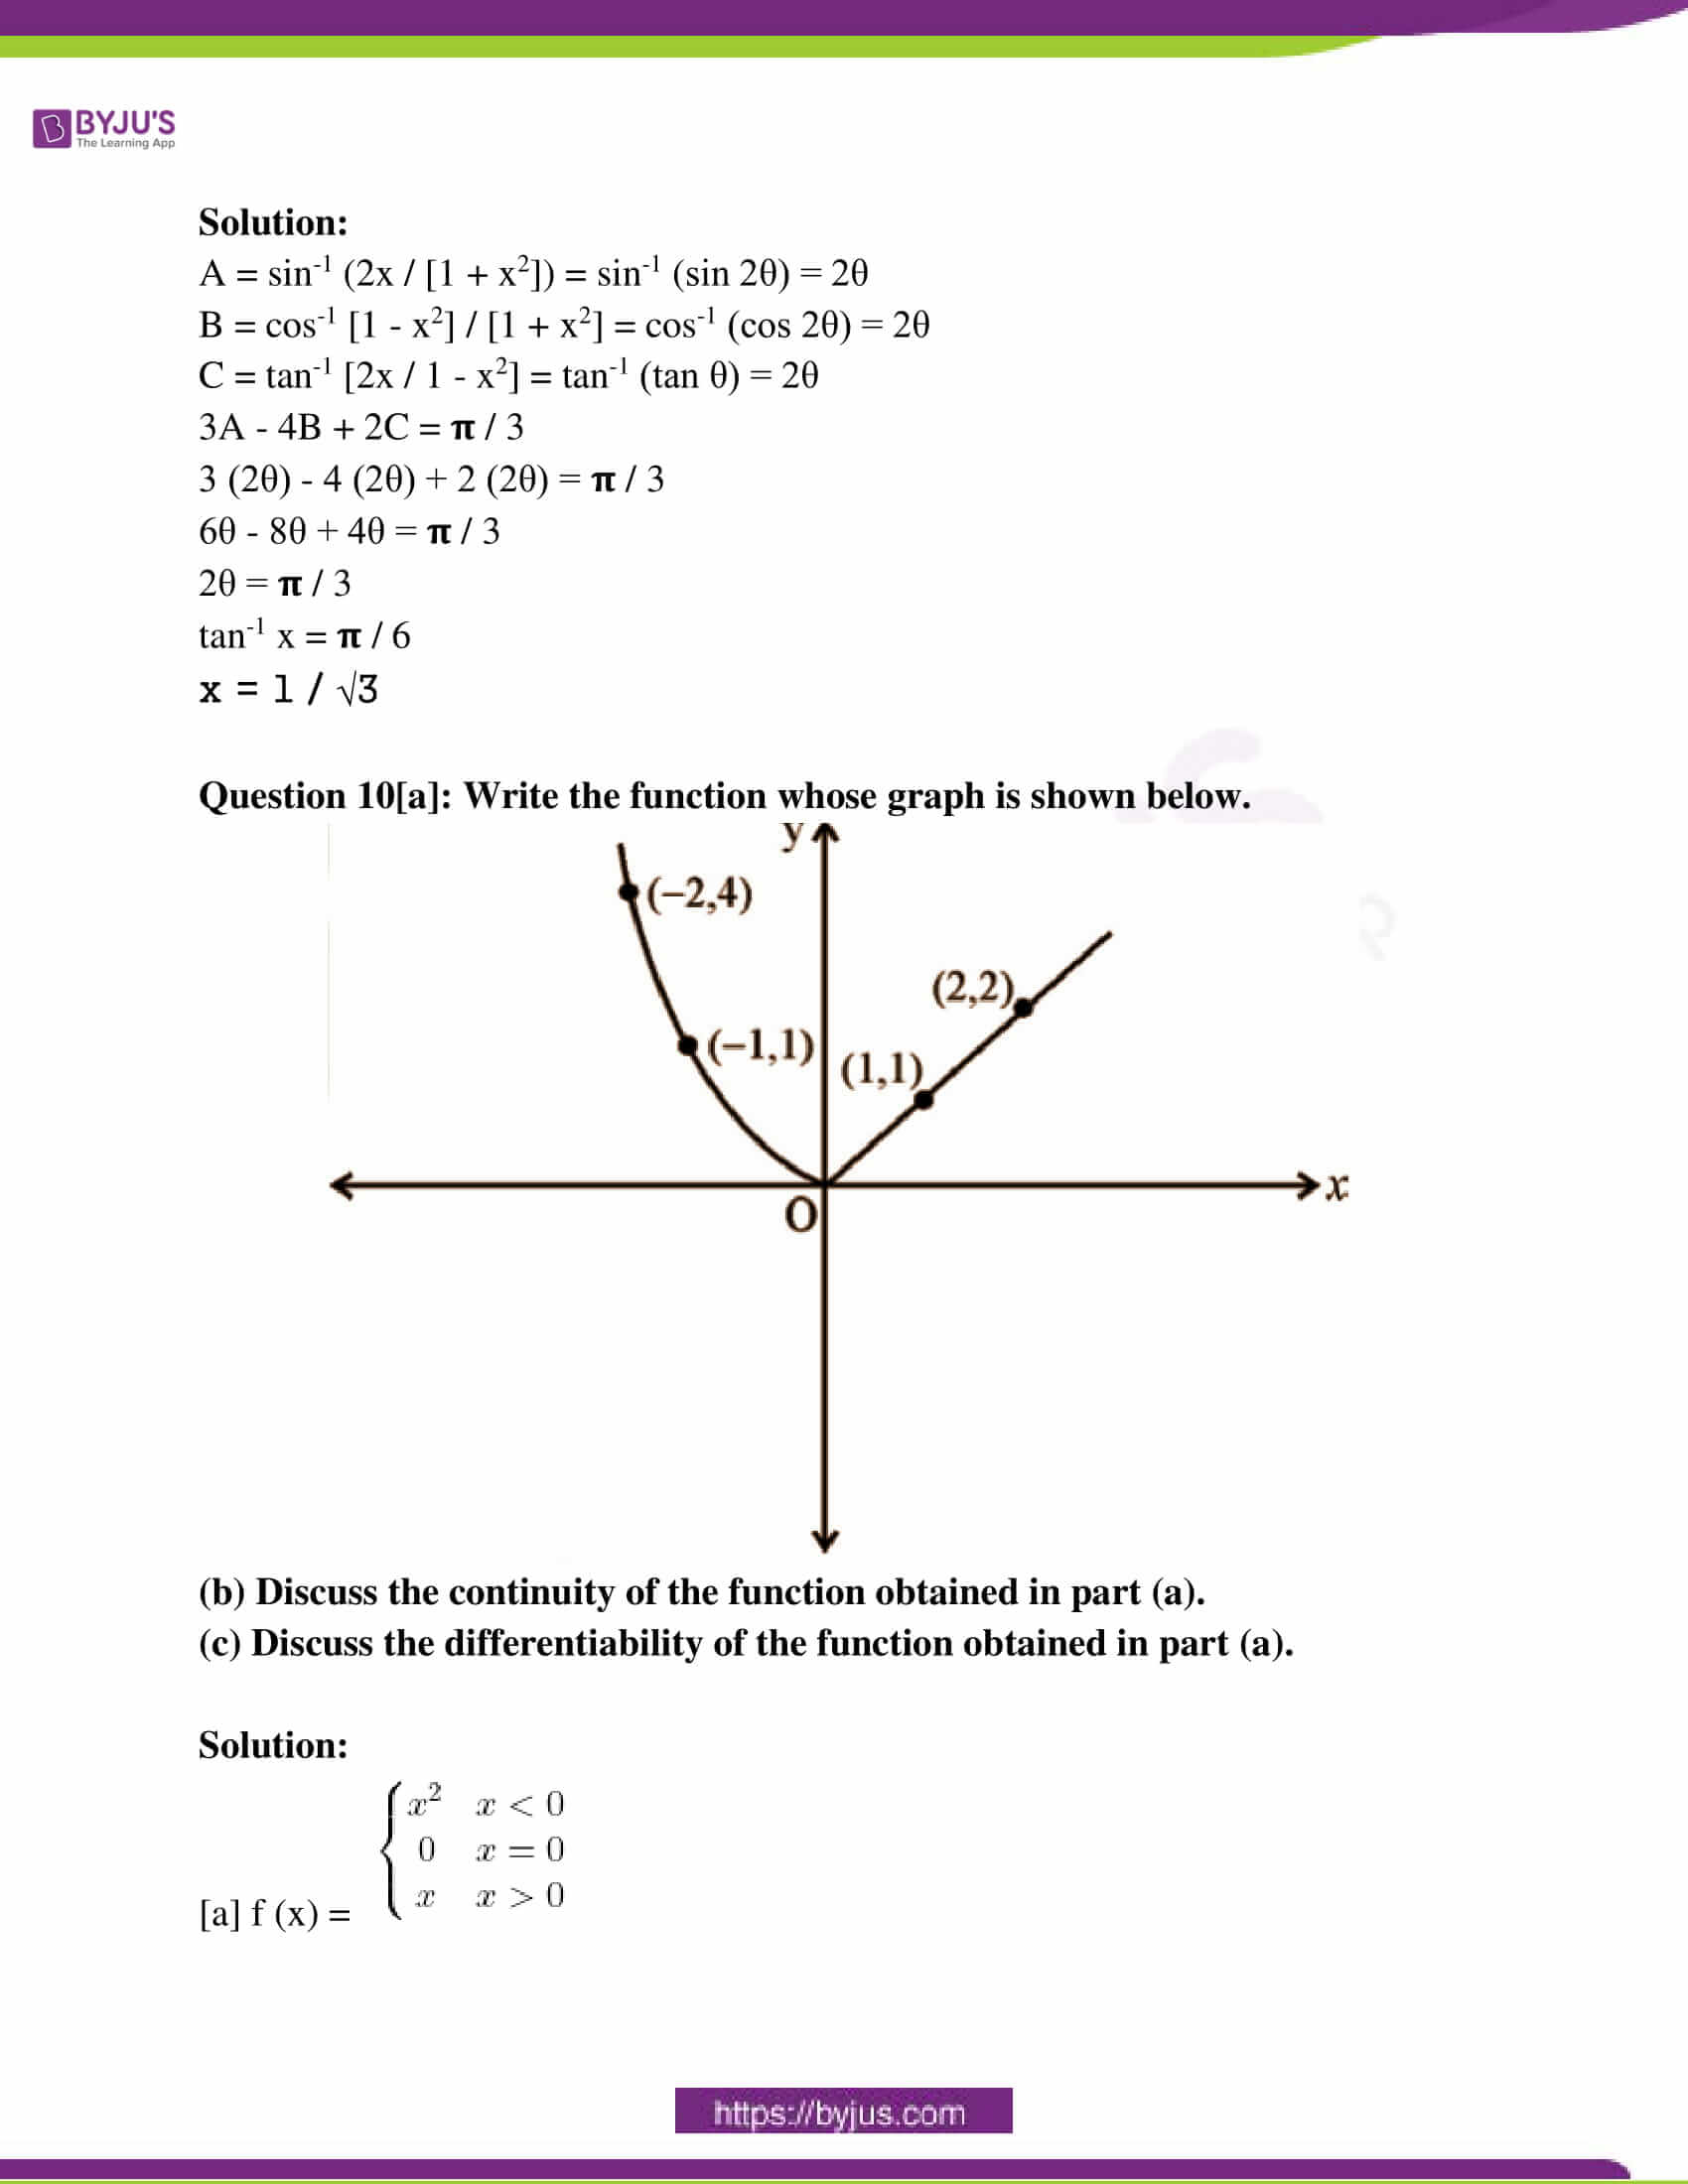 kerala class 12 examination question paper solutions march 2019 07